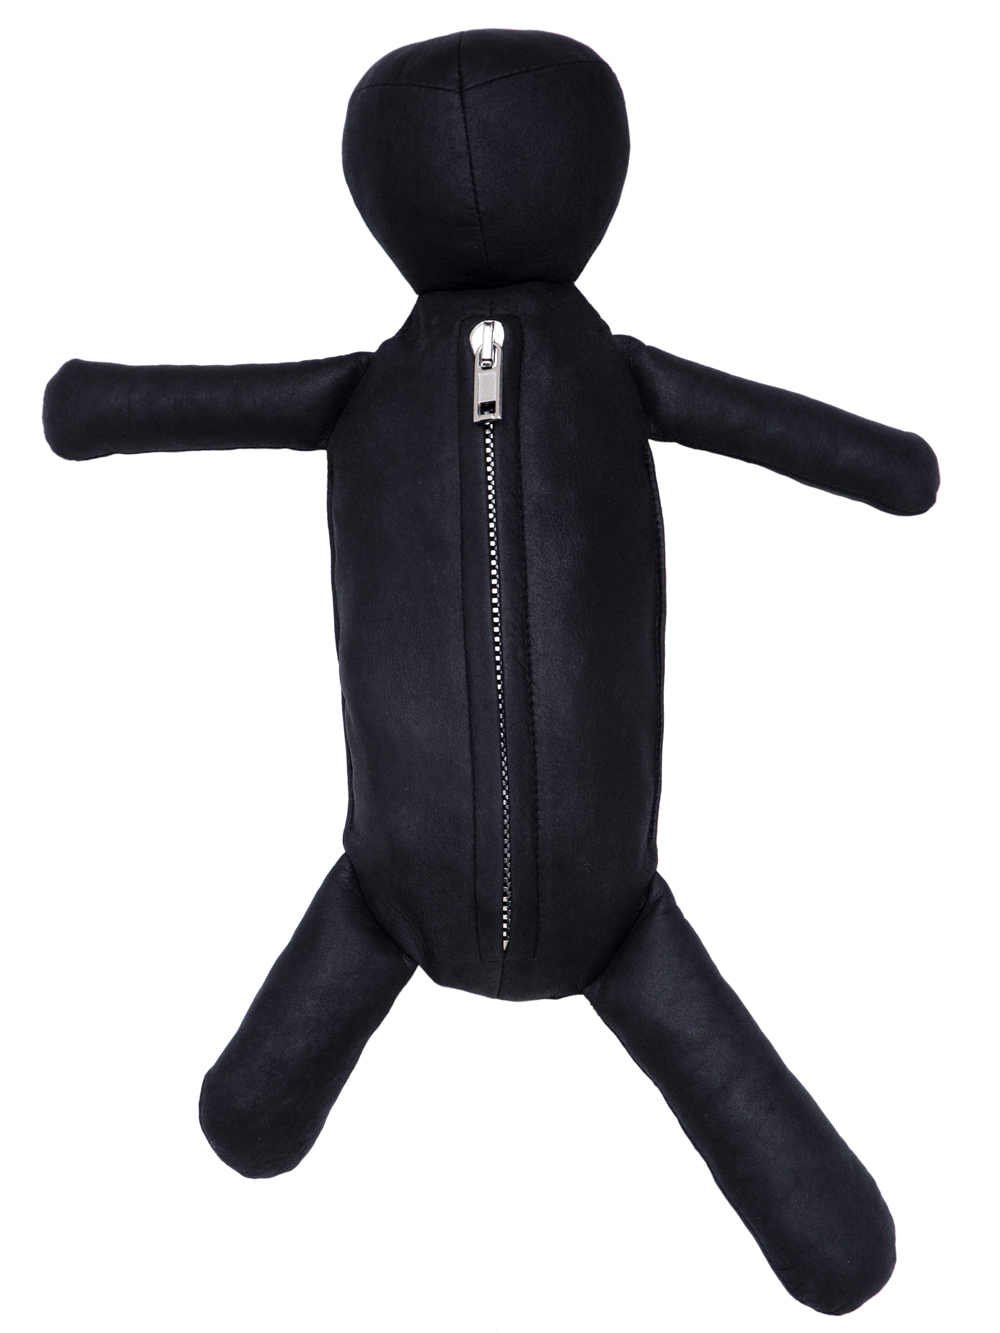 RICK OWENS HUN CYCLOP IN BLACK LEATHER